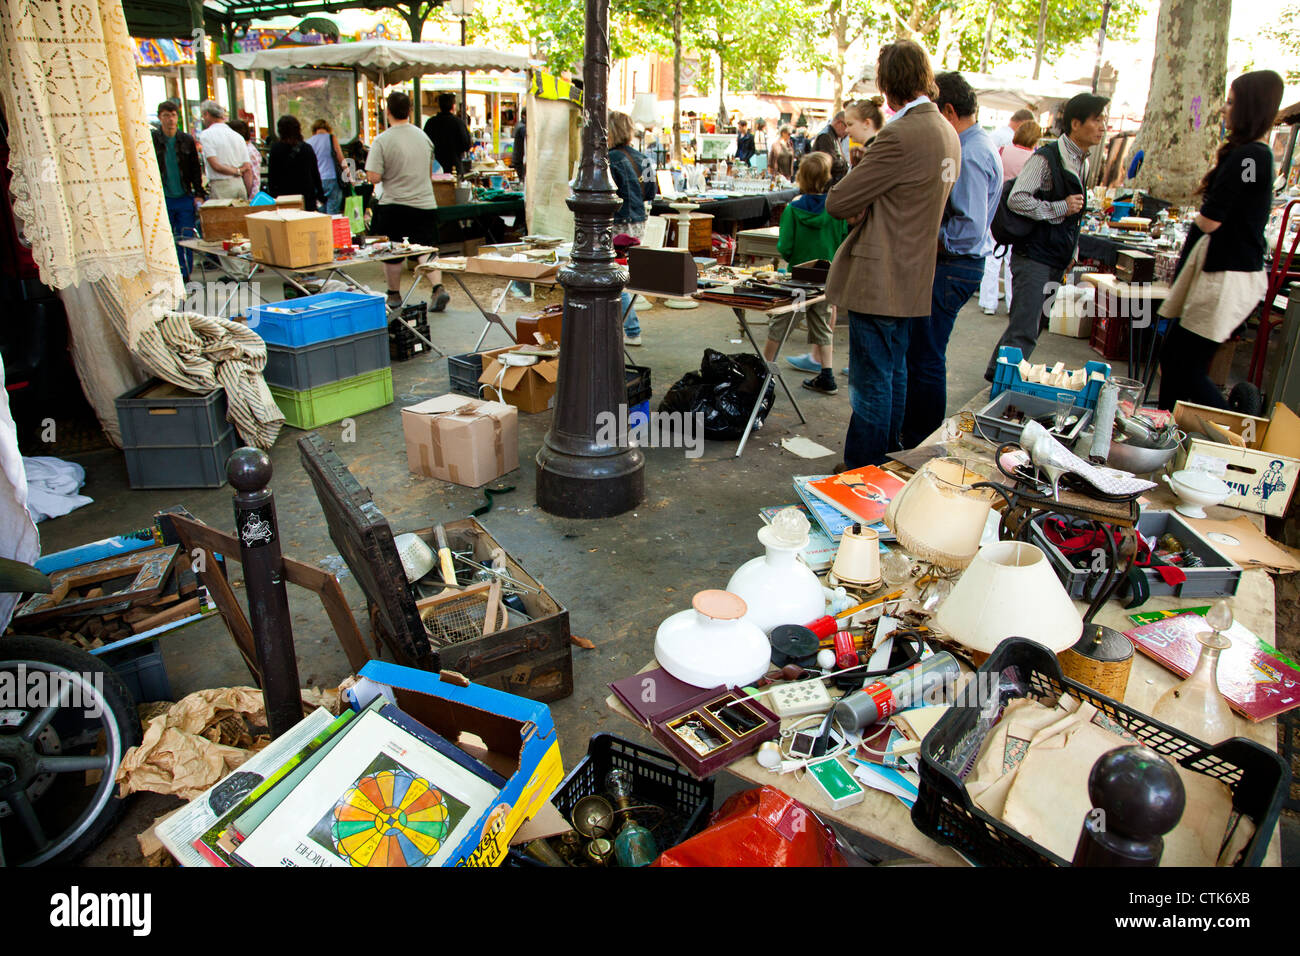 Second hand market selling a variety of goods in Place